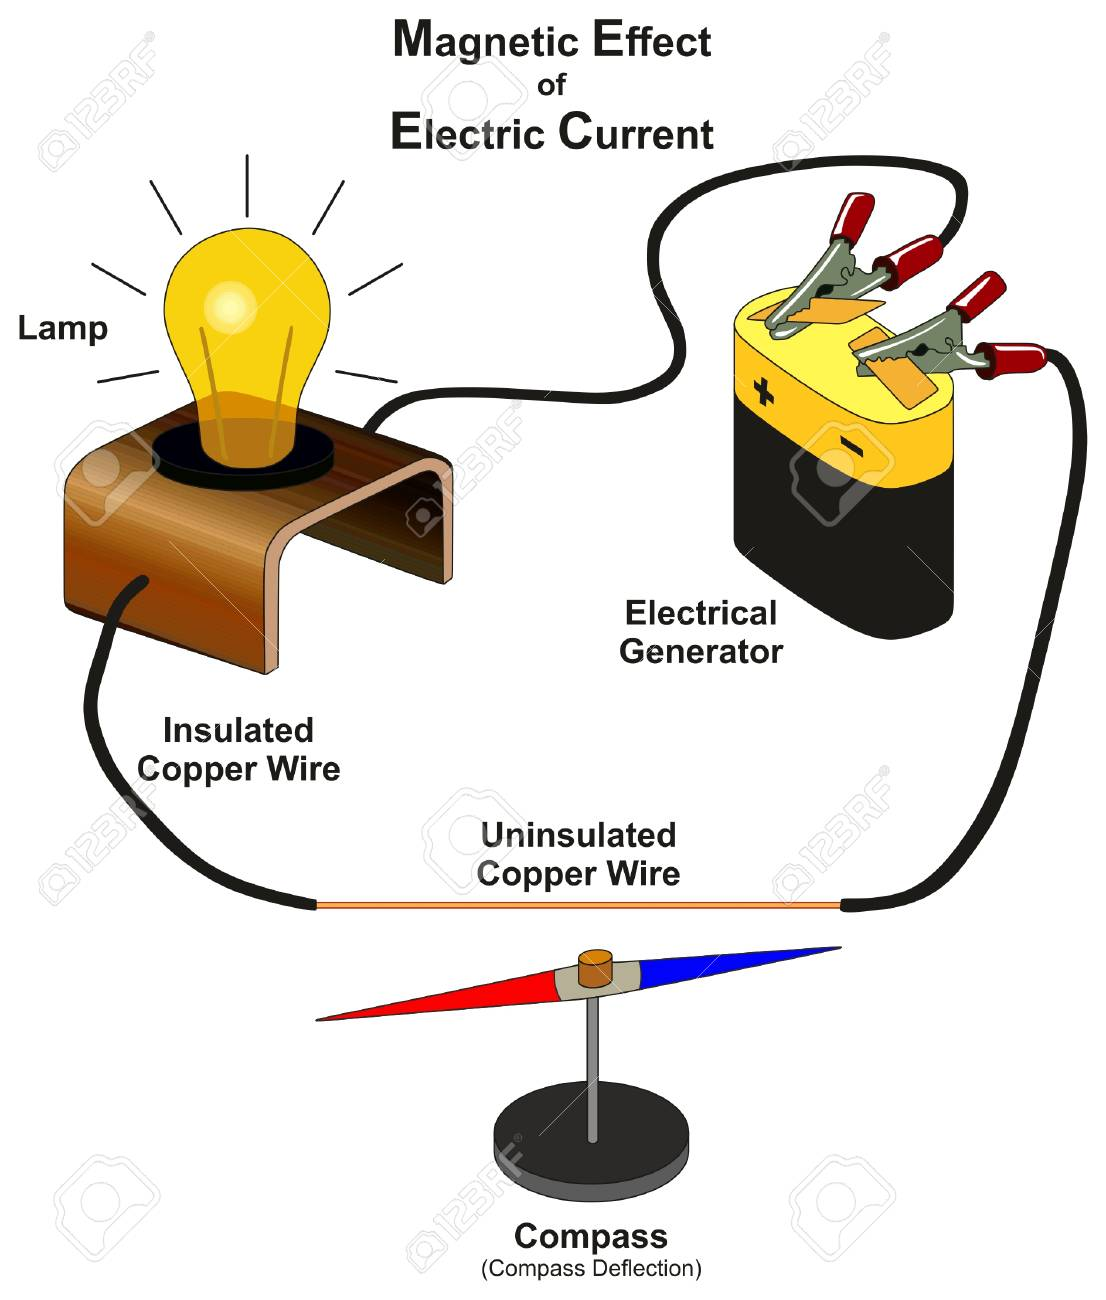 Miraculous Magnetic Effect Of Electric Current Infographic Diagram Showing Wiring Cloud Favobieswglorg